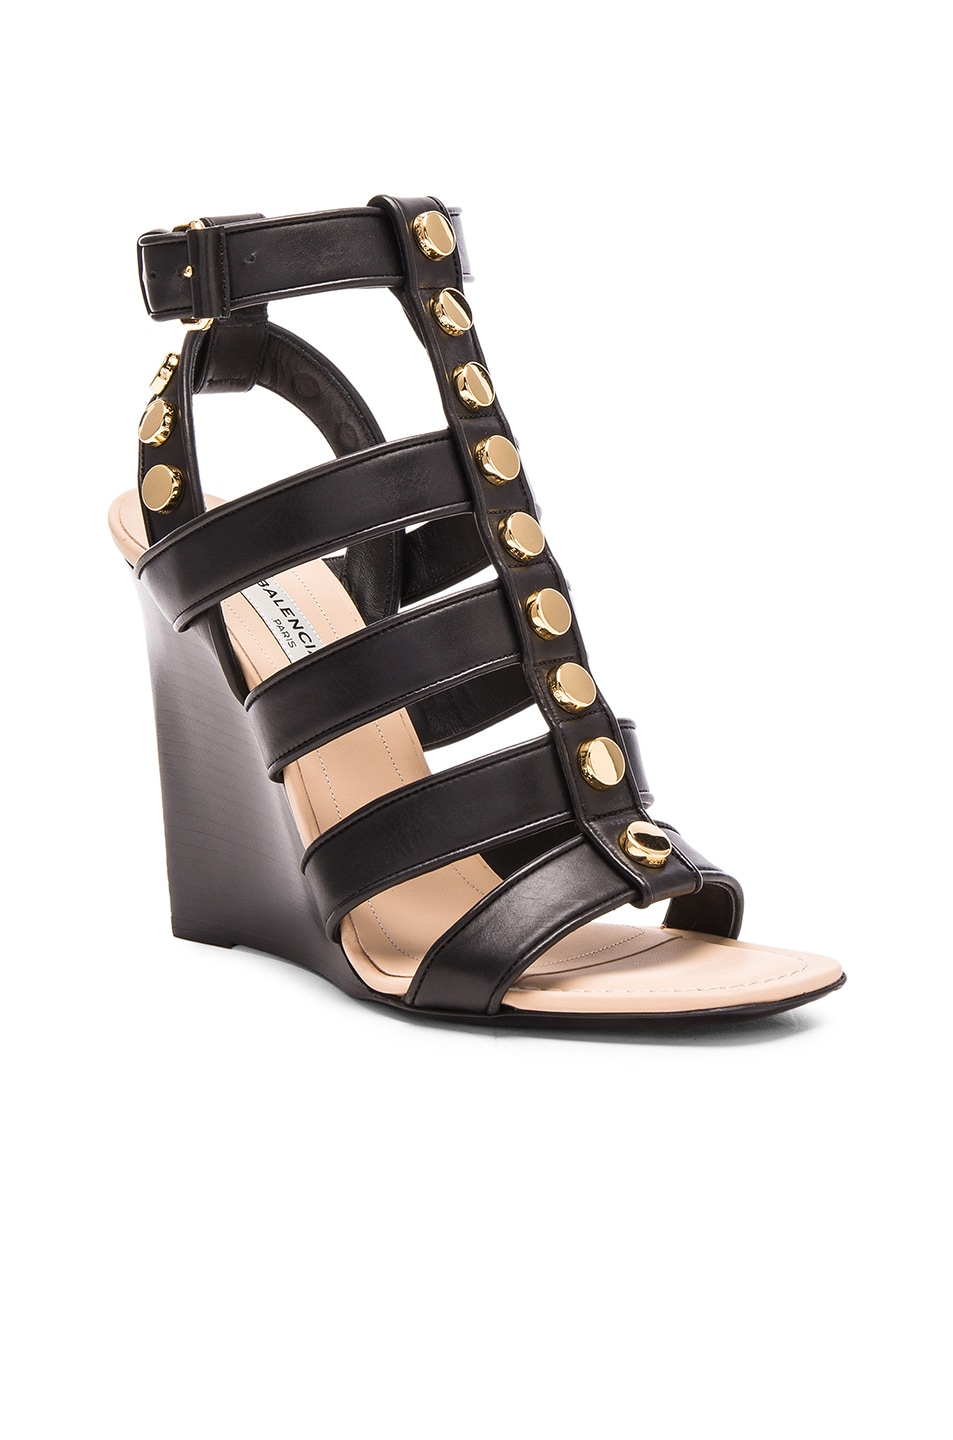 Image 2 of Balenciaga Studded Leather Wedge Sandals in Black